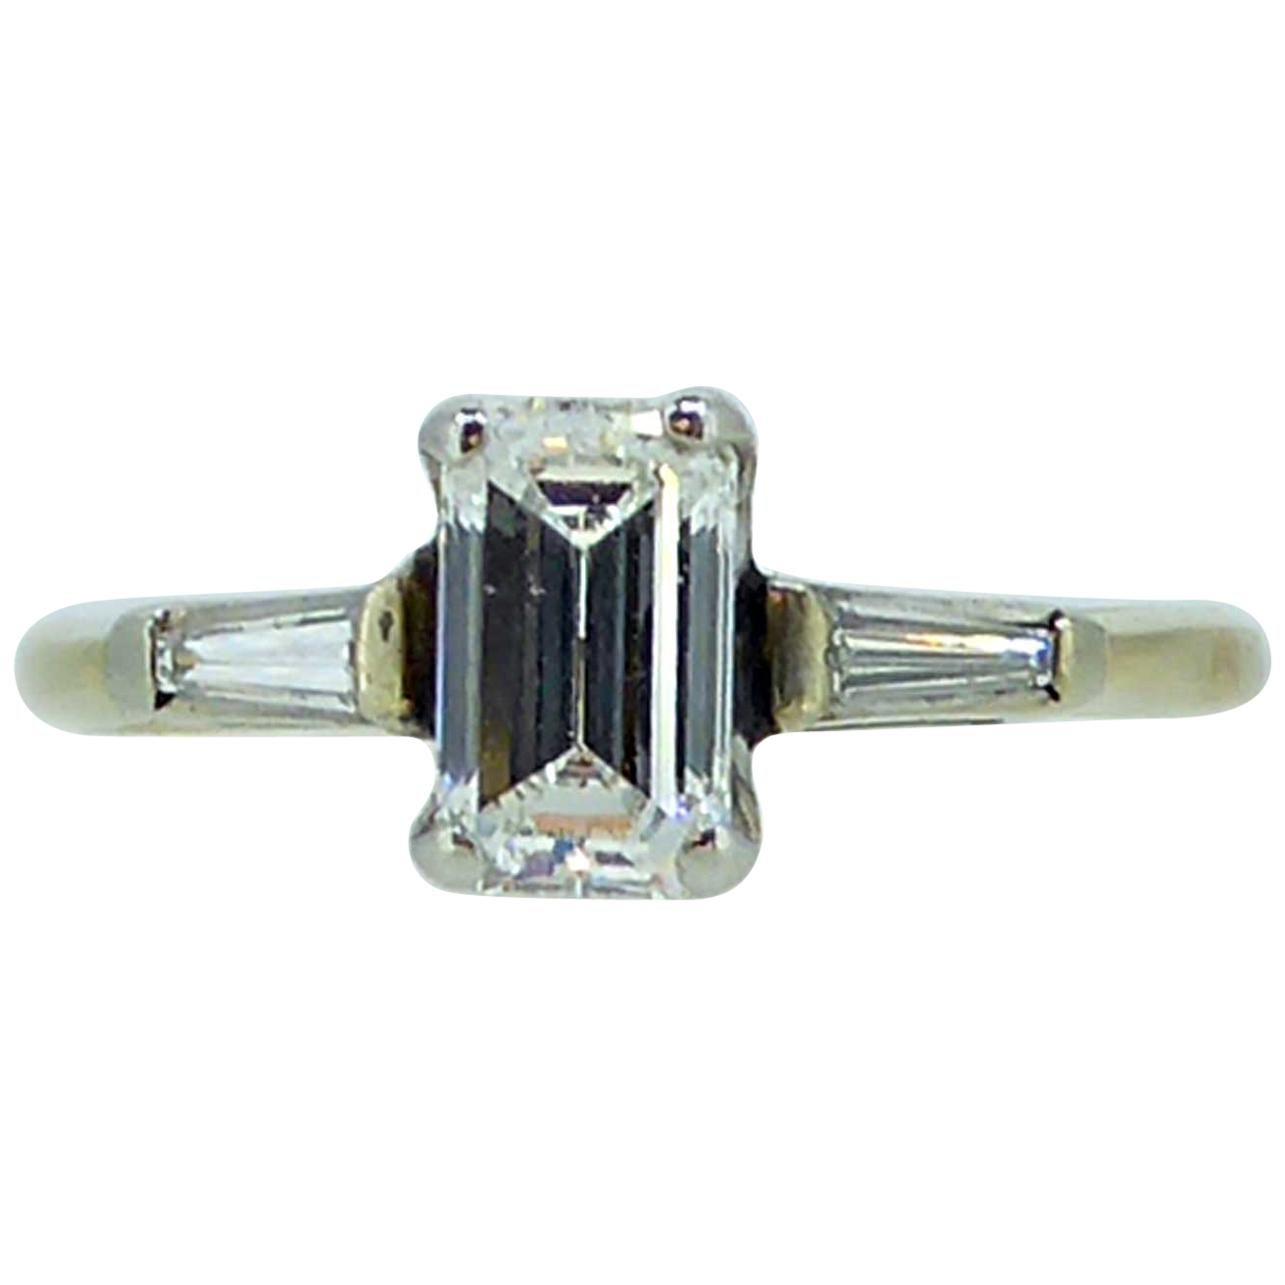 1 58 Carat Diamond Solitaire Ring with Tapered Baguette Shoulders in     Modern Art Deco Emerald Cut Diamond Ring  Tapered Baguette Diamond Shoulders